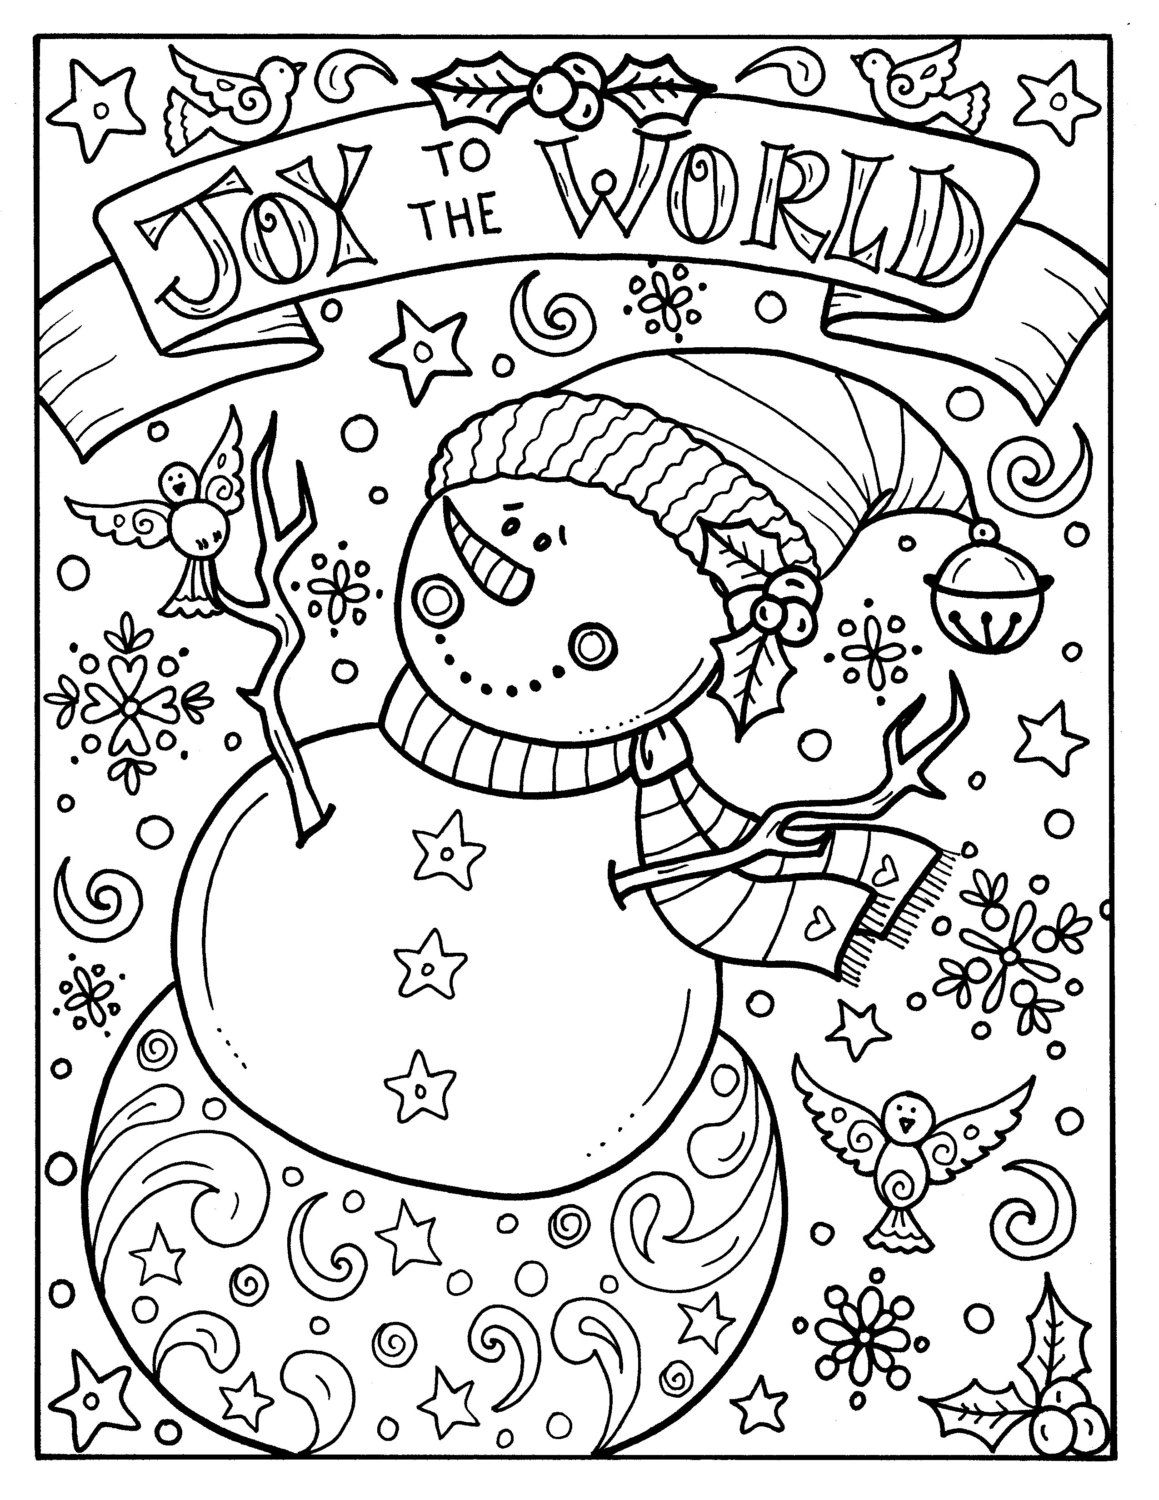 Snowman Joy To The World Digital Download Christmas Coloring Etsy Christmas Coloring Sheets Snowman Coloring Pages Christmas Coloring Pages